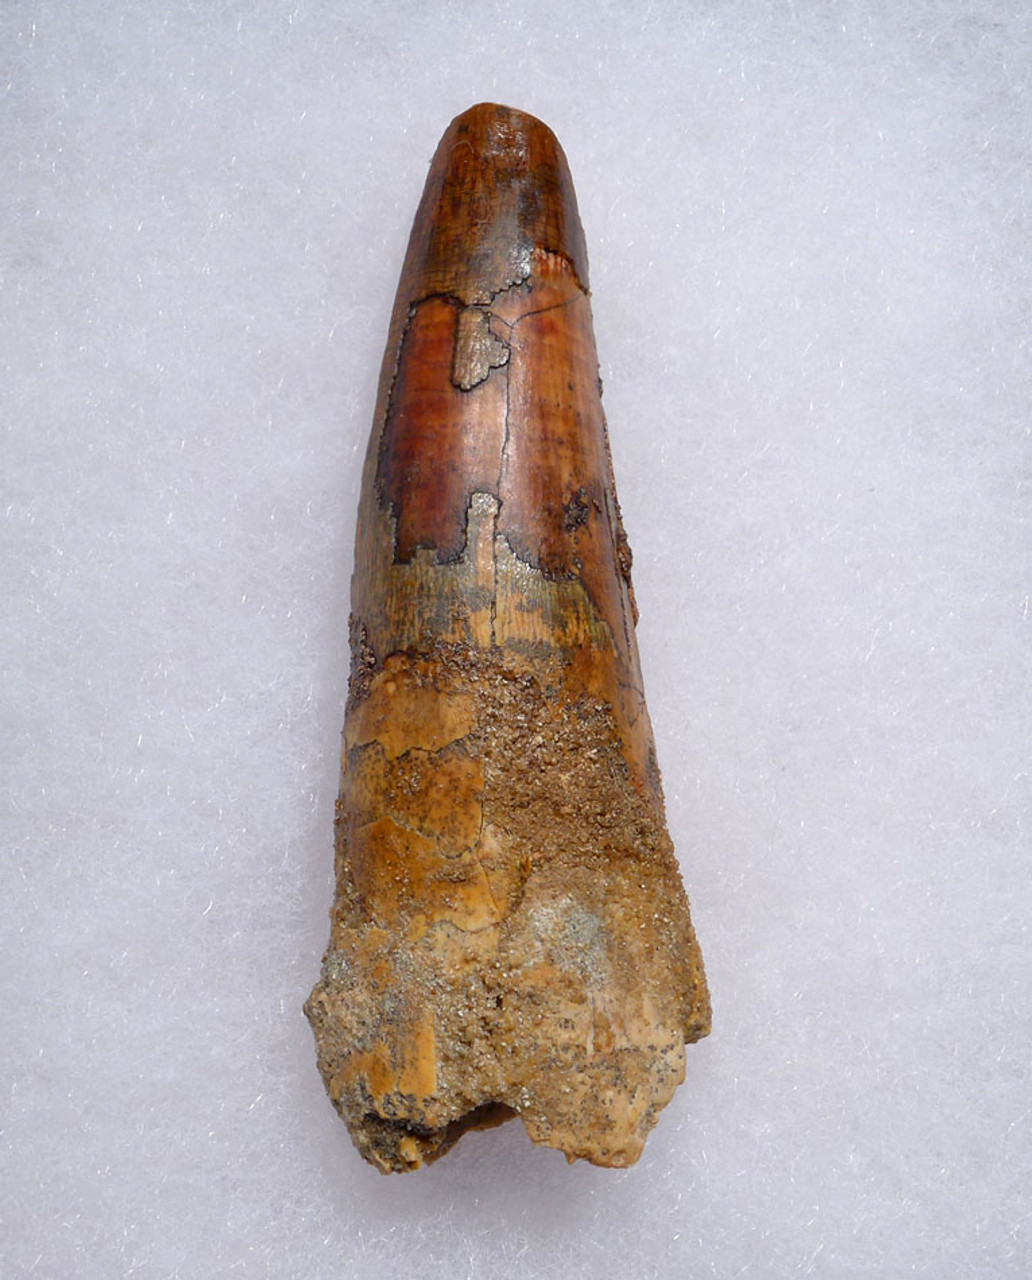 COLORFUL LARGE 3 INCH SPINOSAURUS DINOSAUR FOSSIL TOOTH FROM A MAXIMUM SIZE SPINOSAURUS *DT5-472